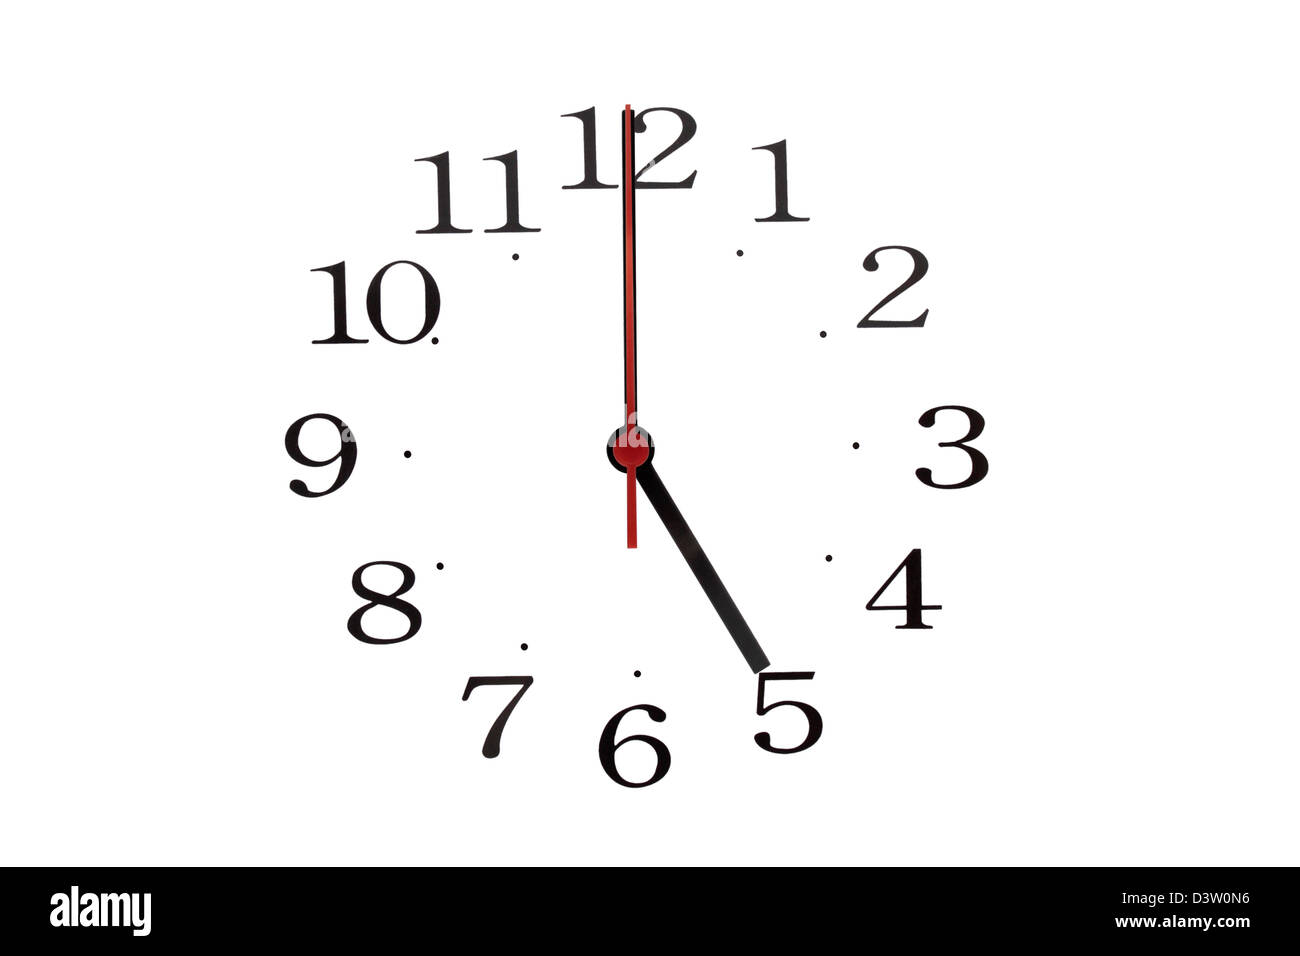 Just the hands and numbers from a clock reading 05:00 - Stock Image